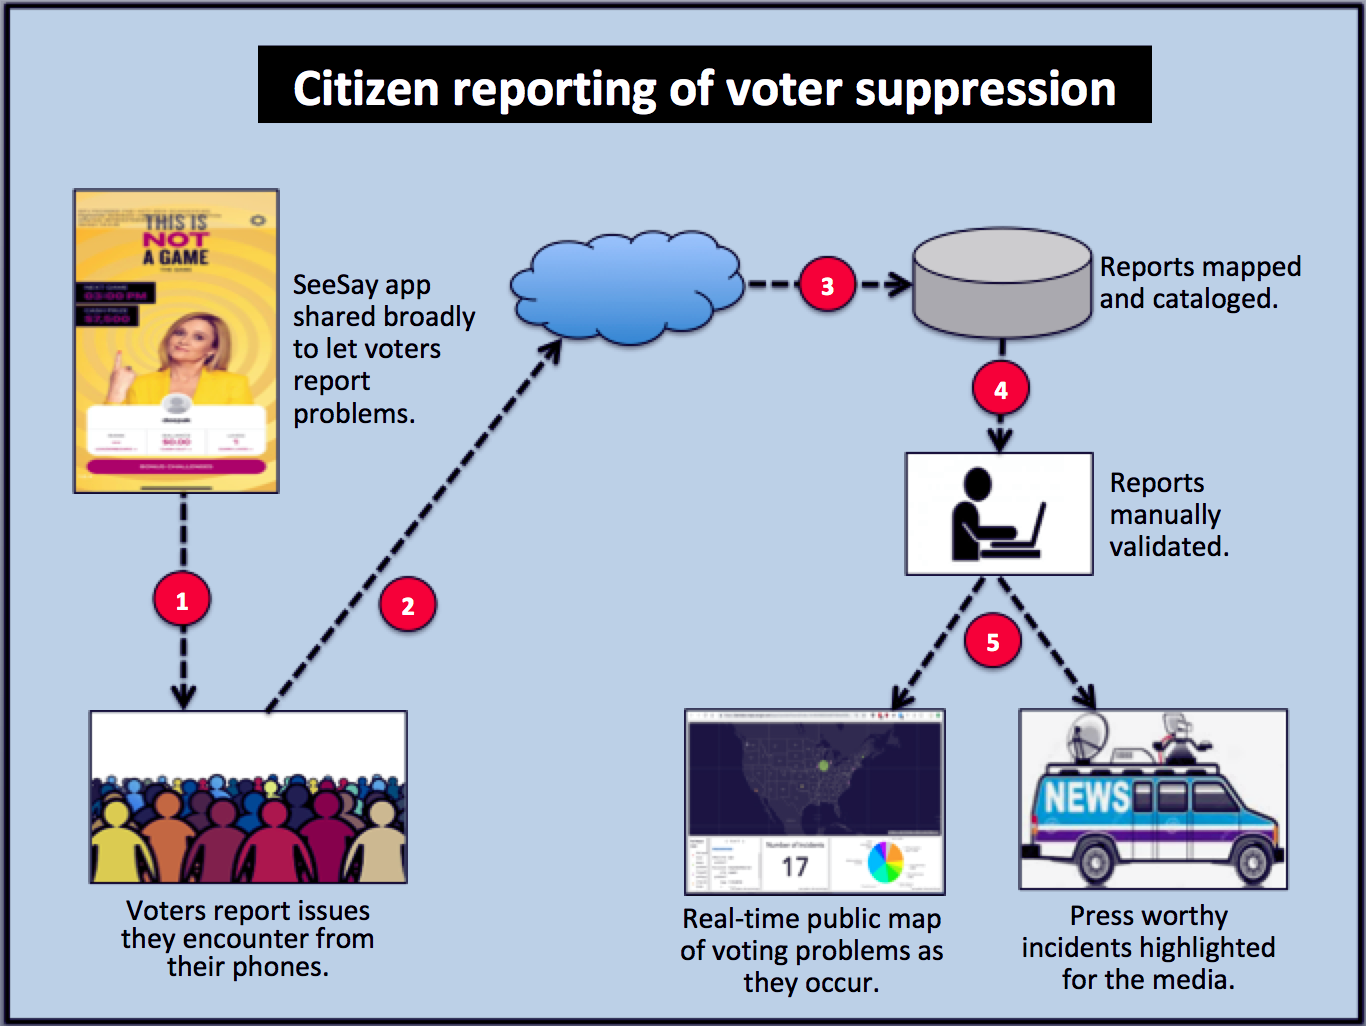 See Say converts citizen reported instances of voter suppression into real time maps and alerts.